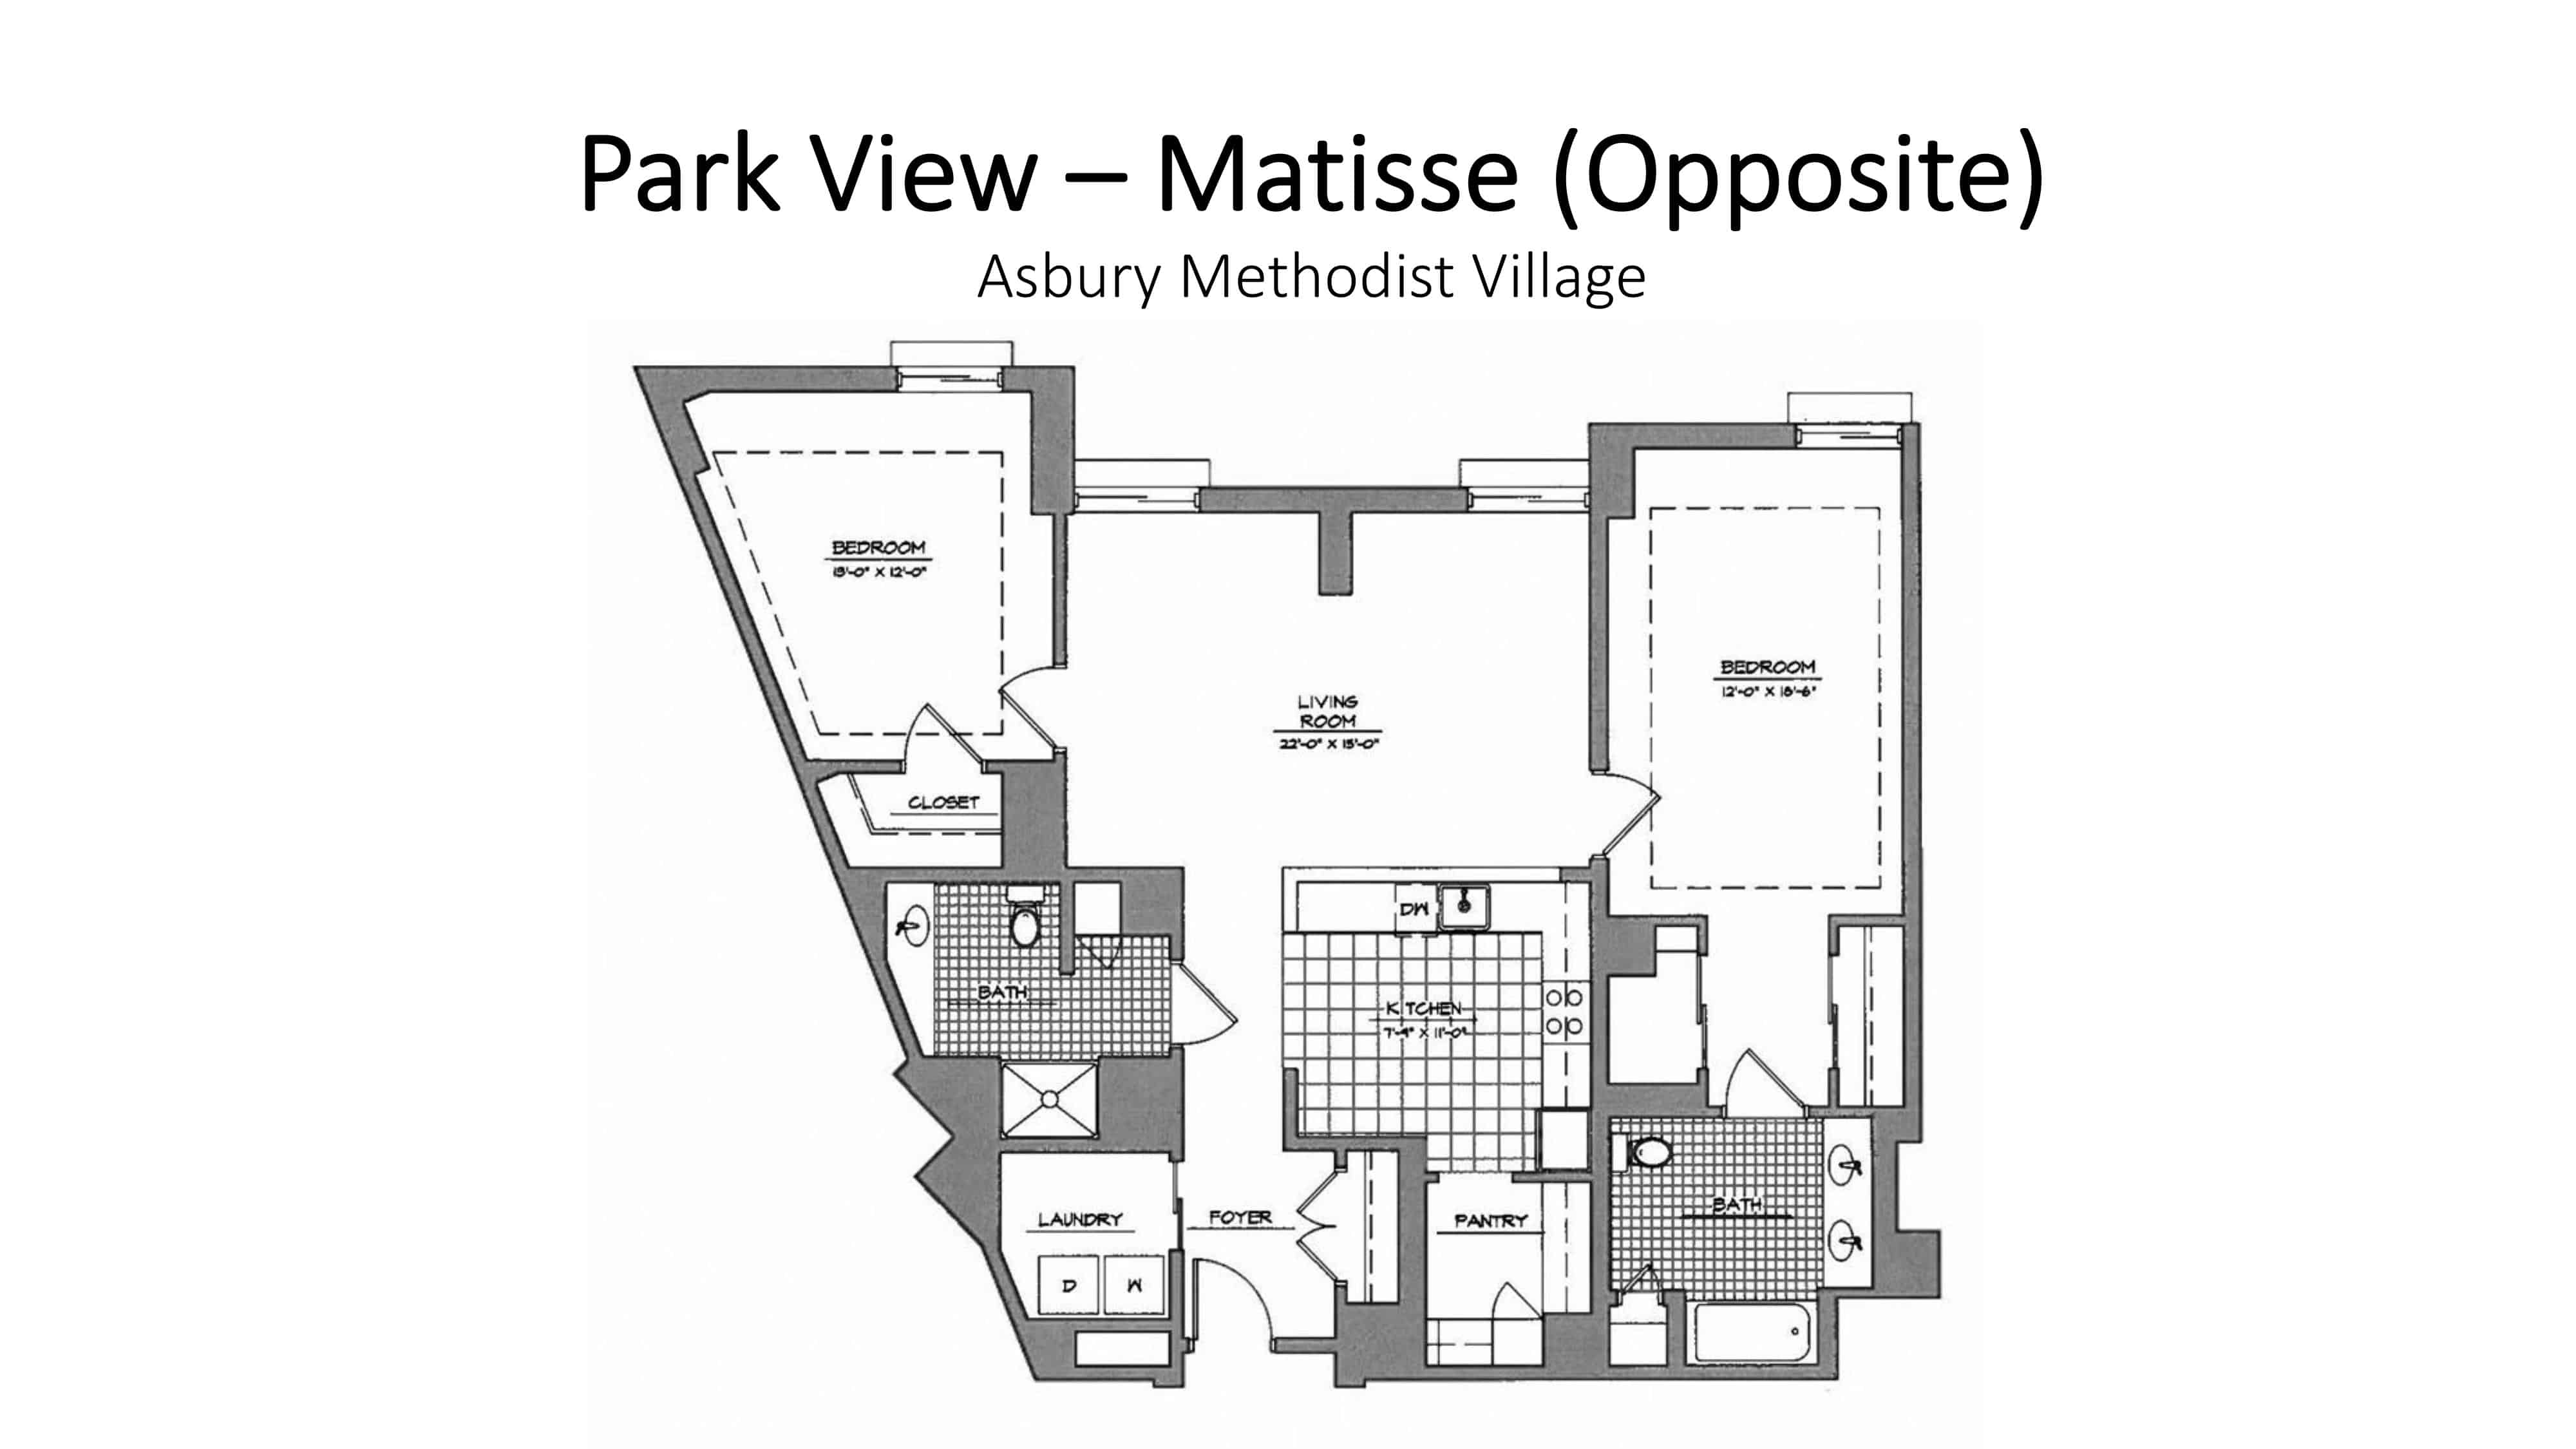 Park_View_Matisse_Opposite